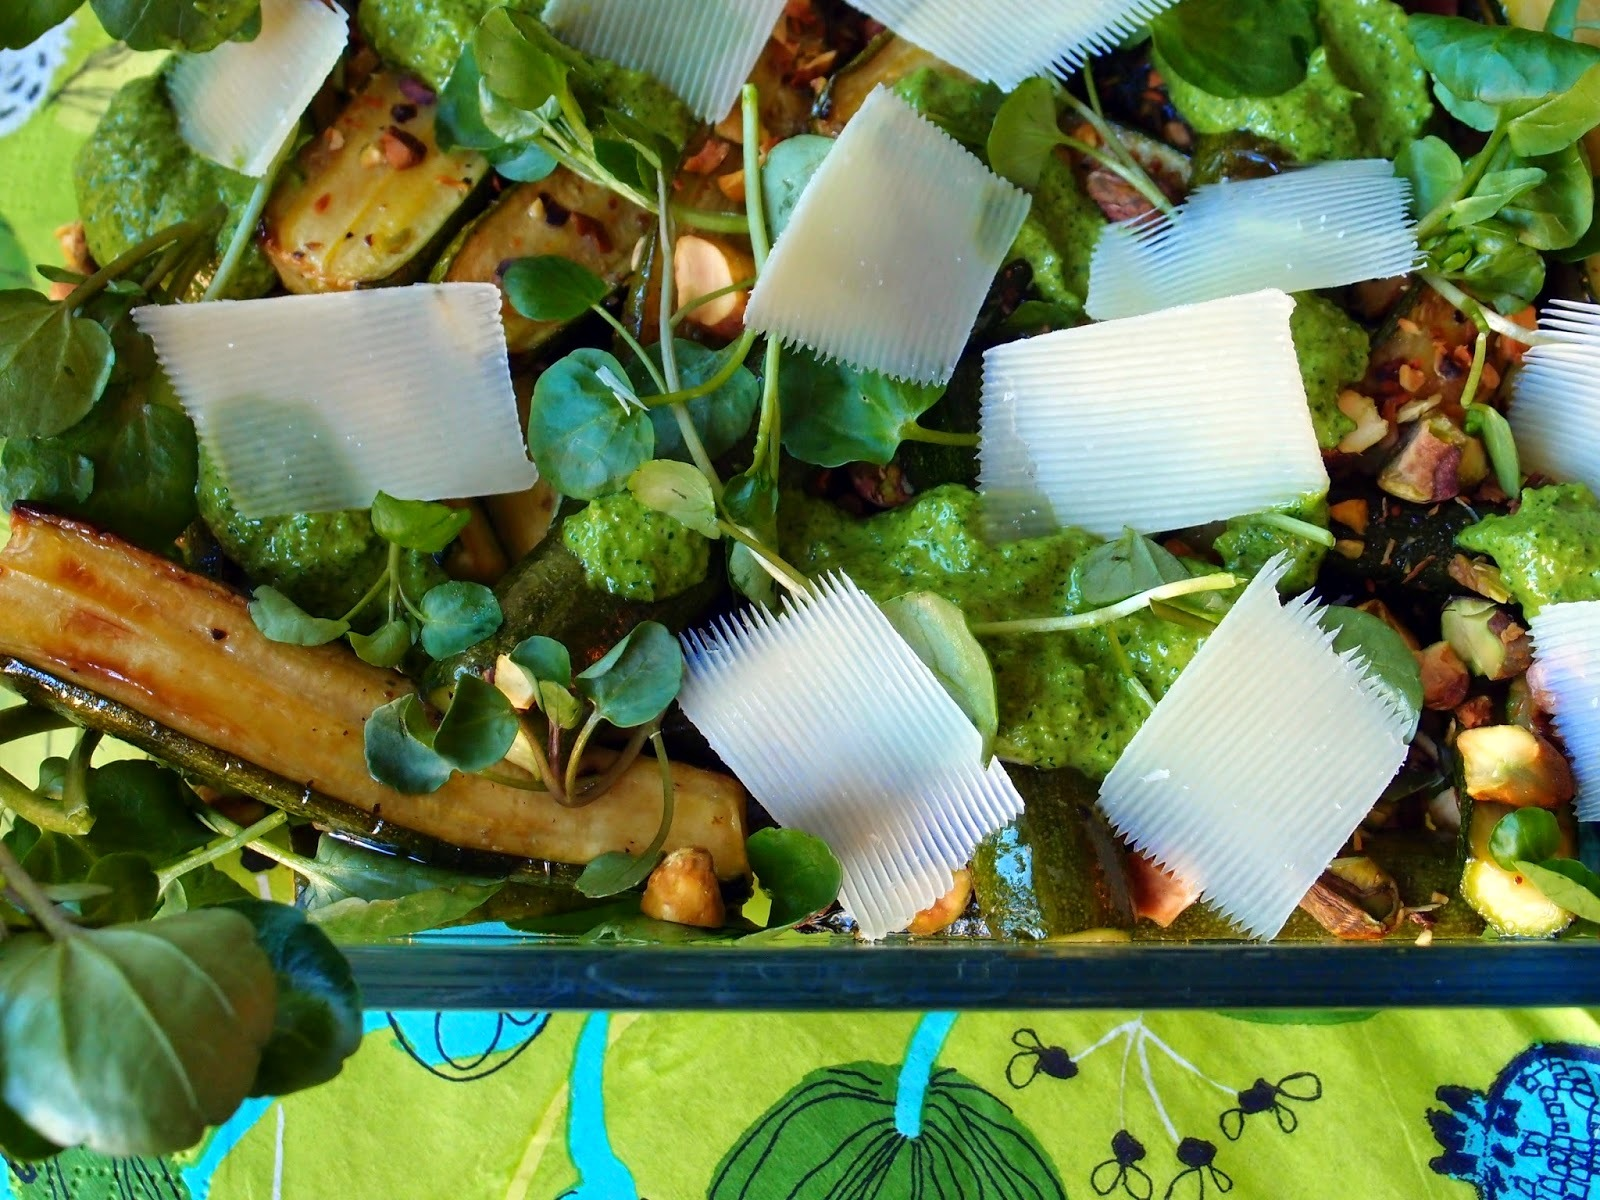 Ottolenghi: W is for watercress